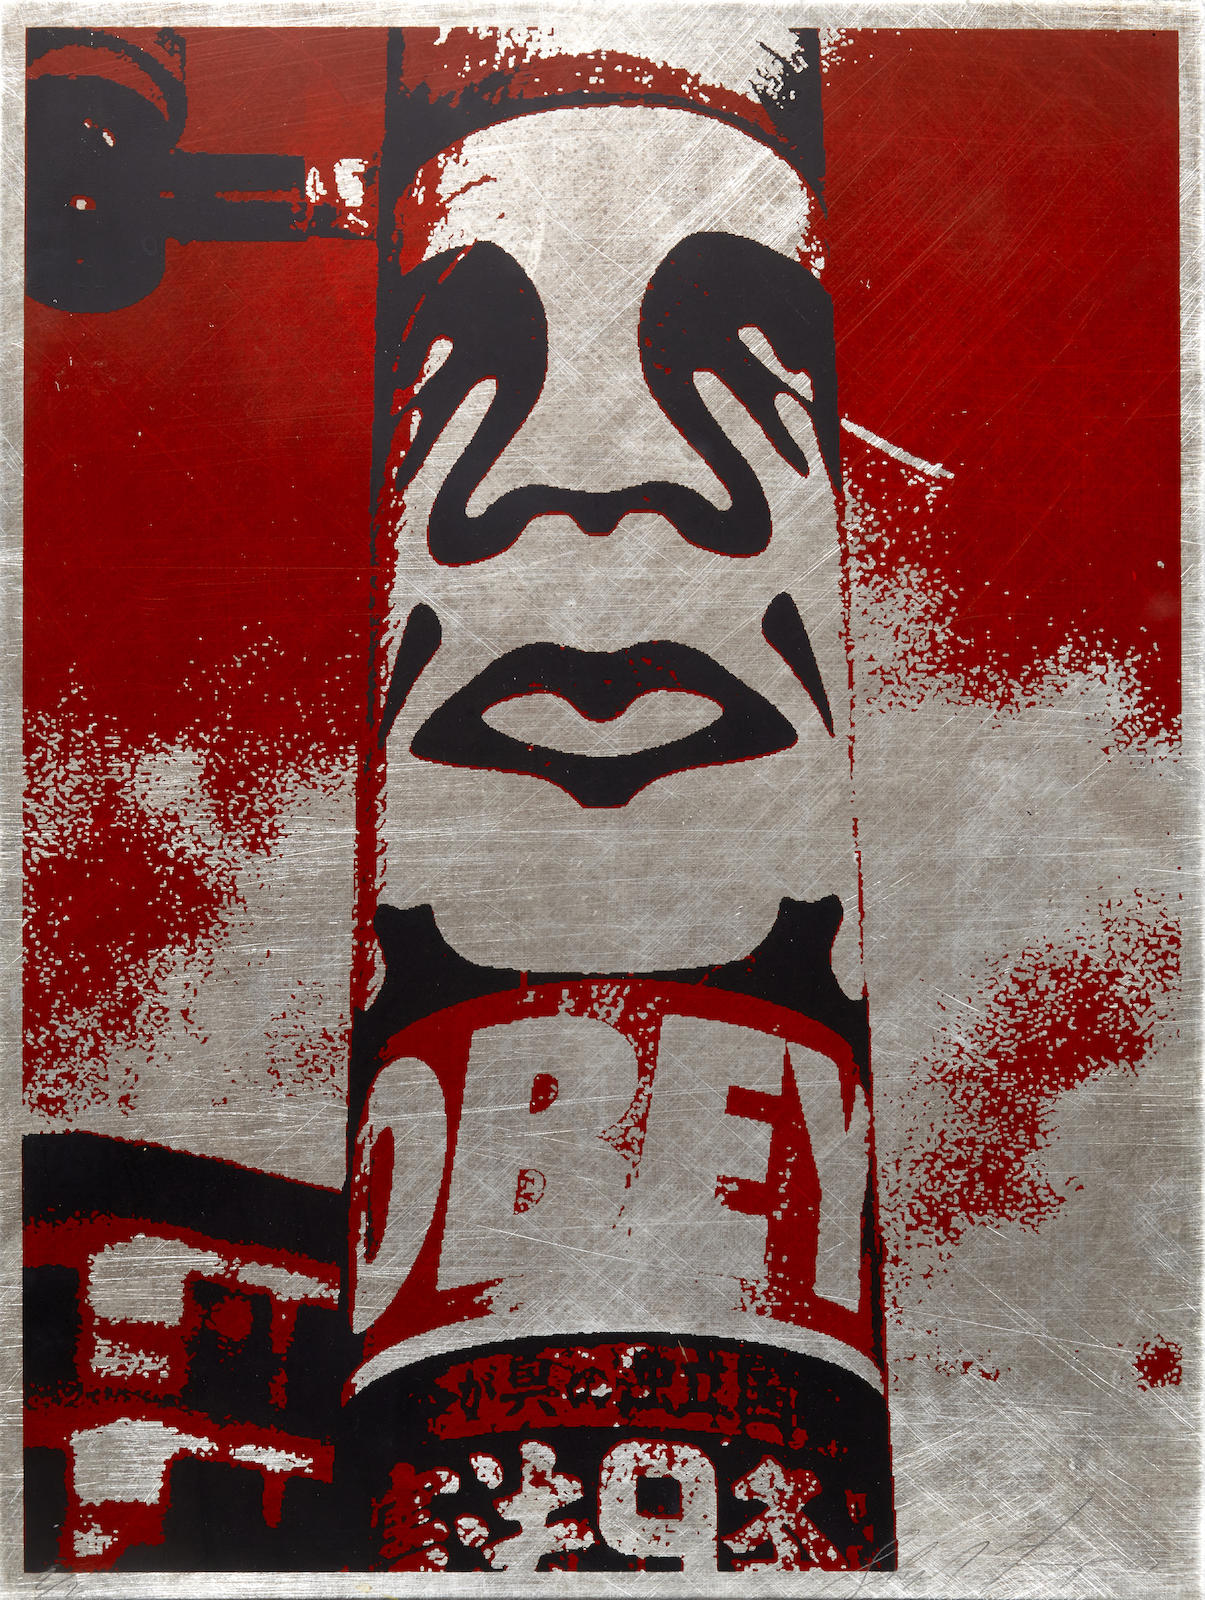 Shepard Fairey-Obey Pole-2001